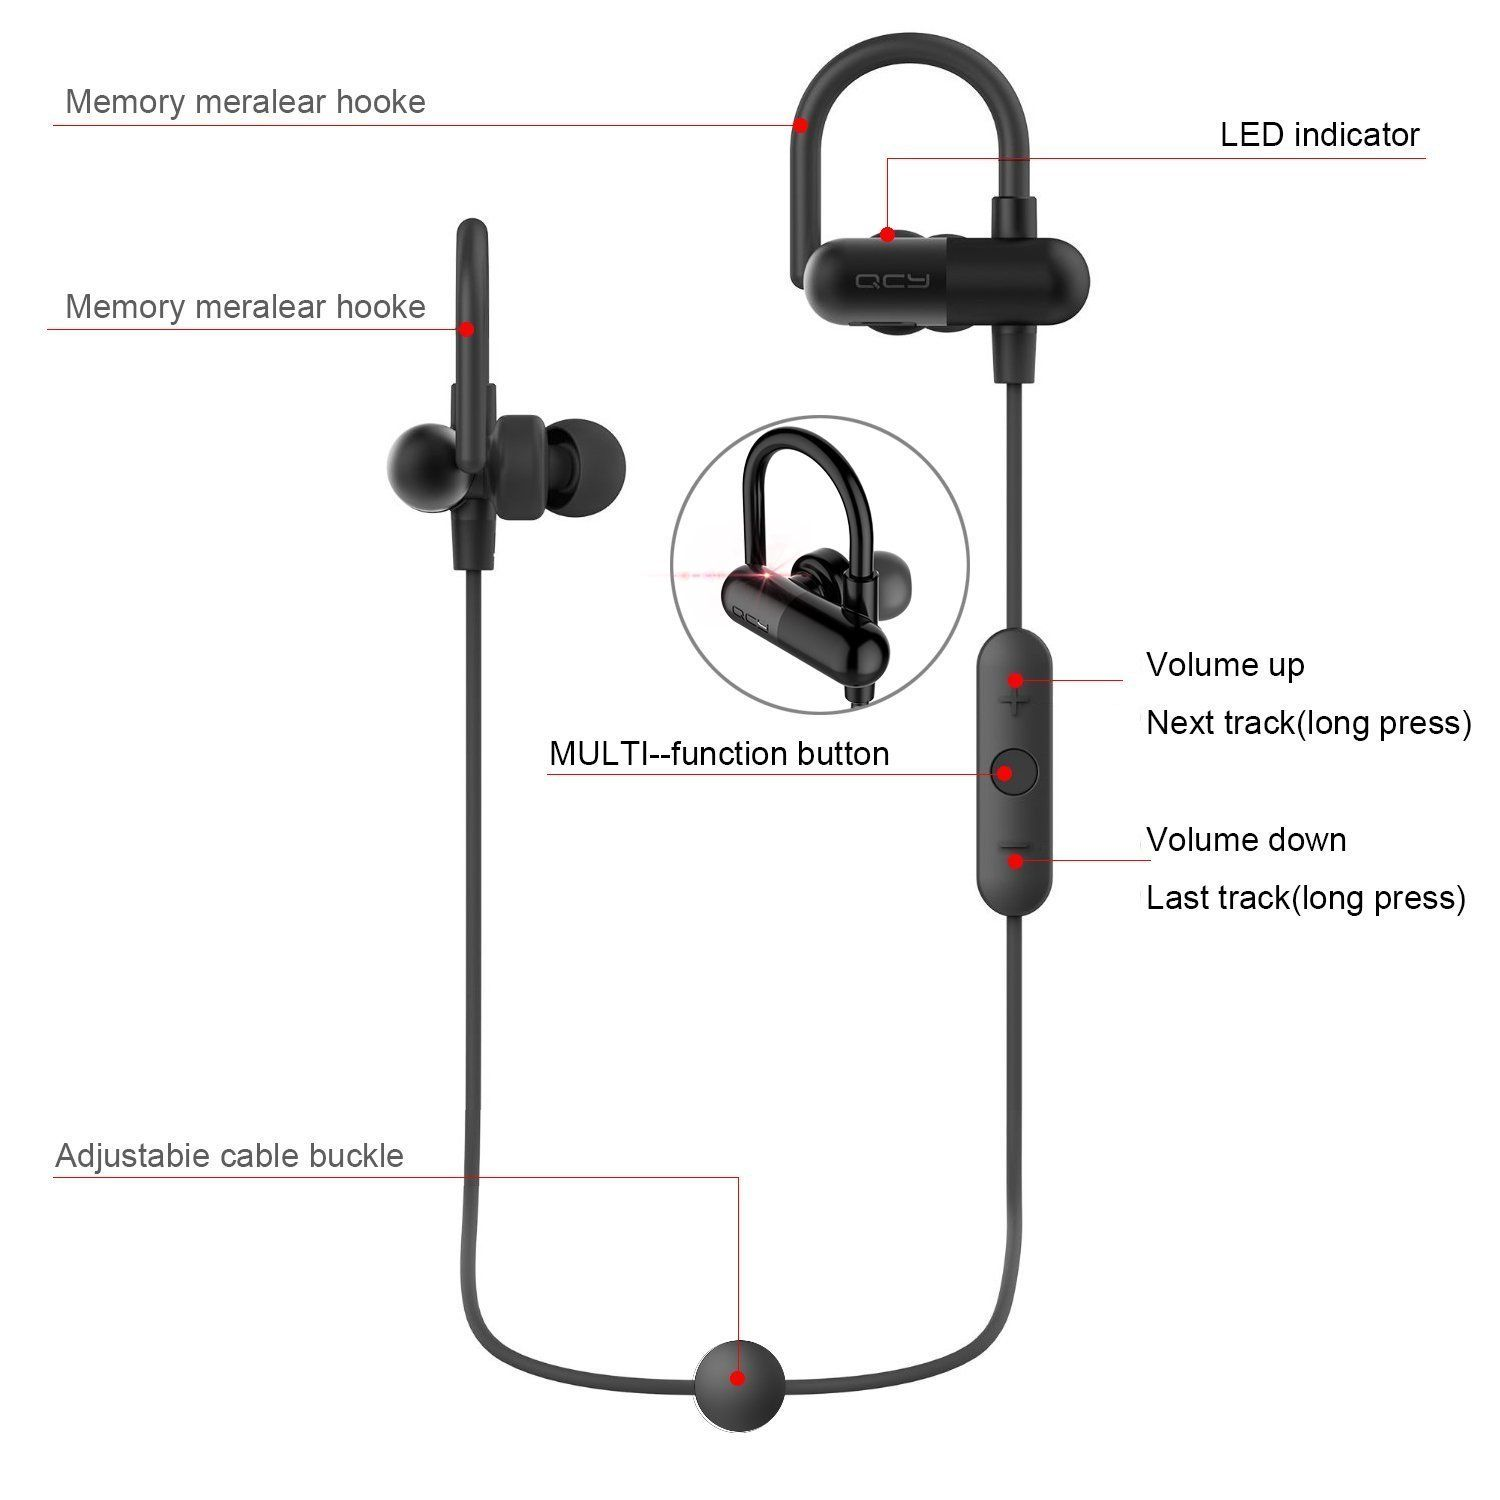 Amazon.com  QCY QY11 Bluetooth Headphones with Memory Metal Secure Ear  Hooks Wireless In 8e484f4753